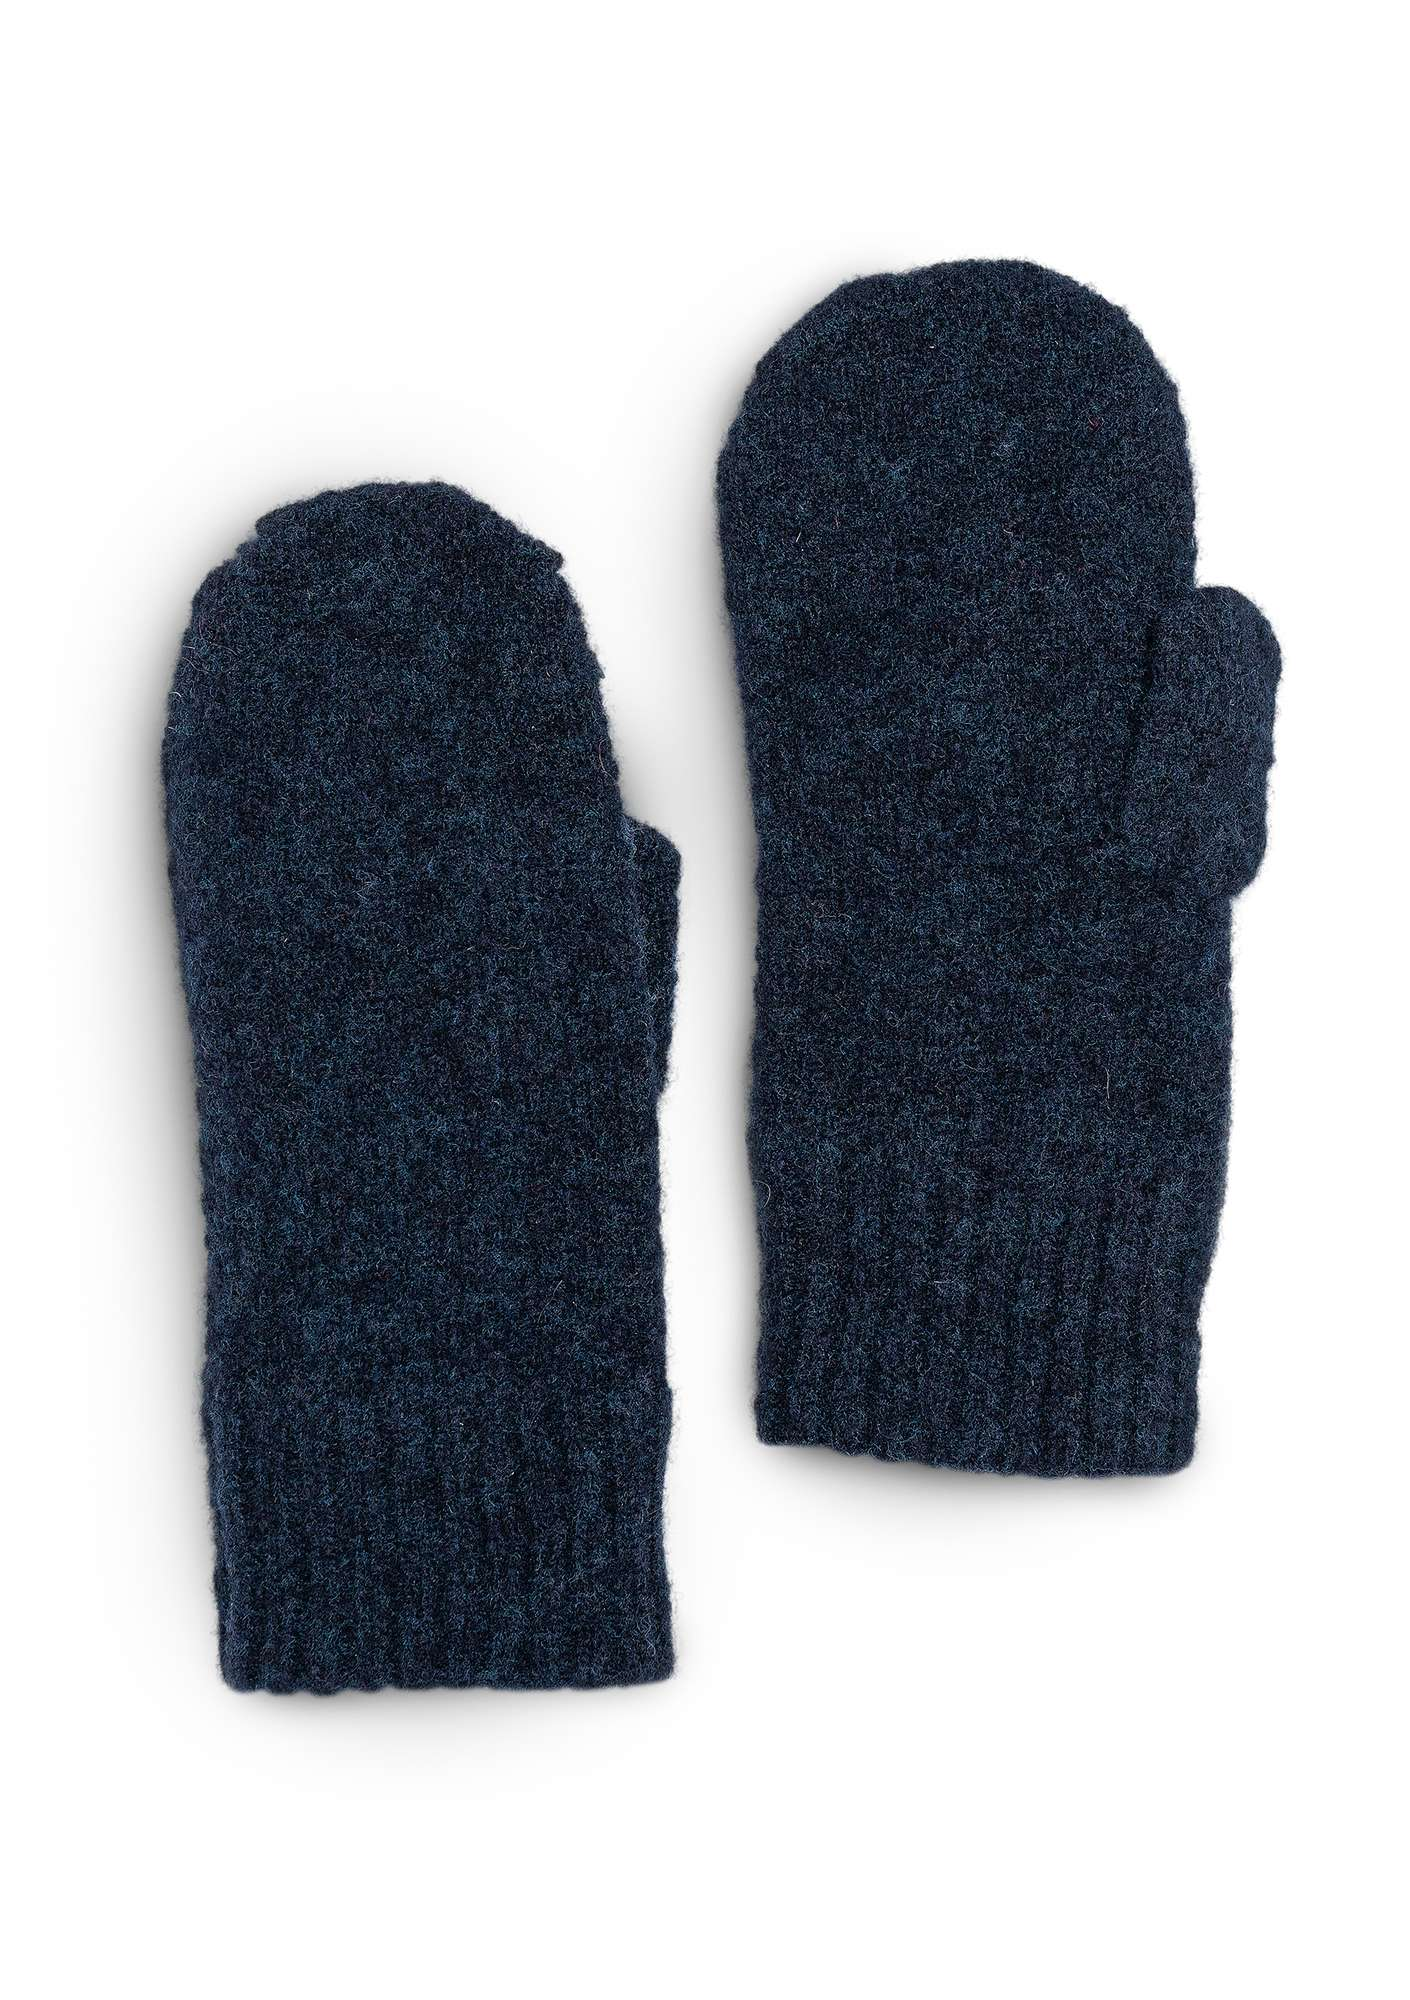 Knitted mittens in a recycled cashmere blend dark indigo